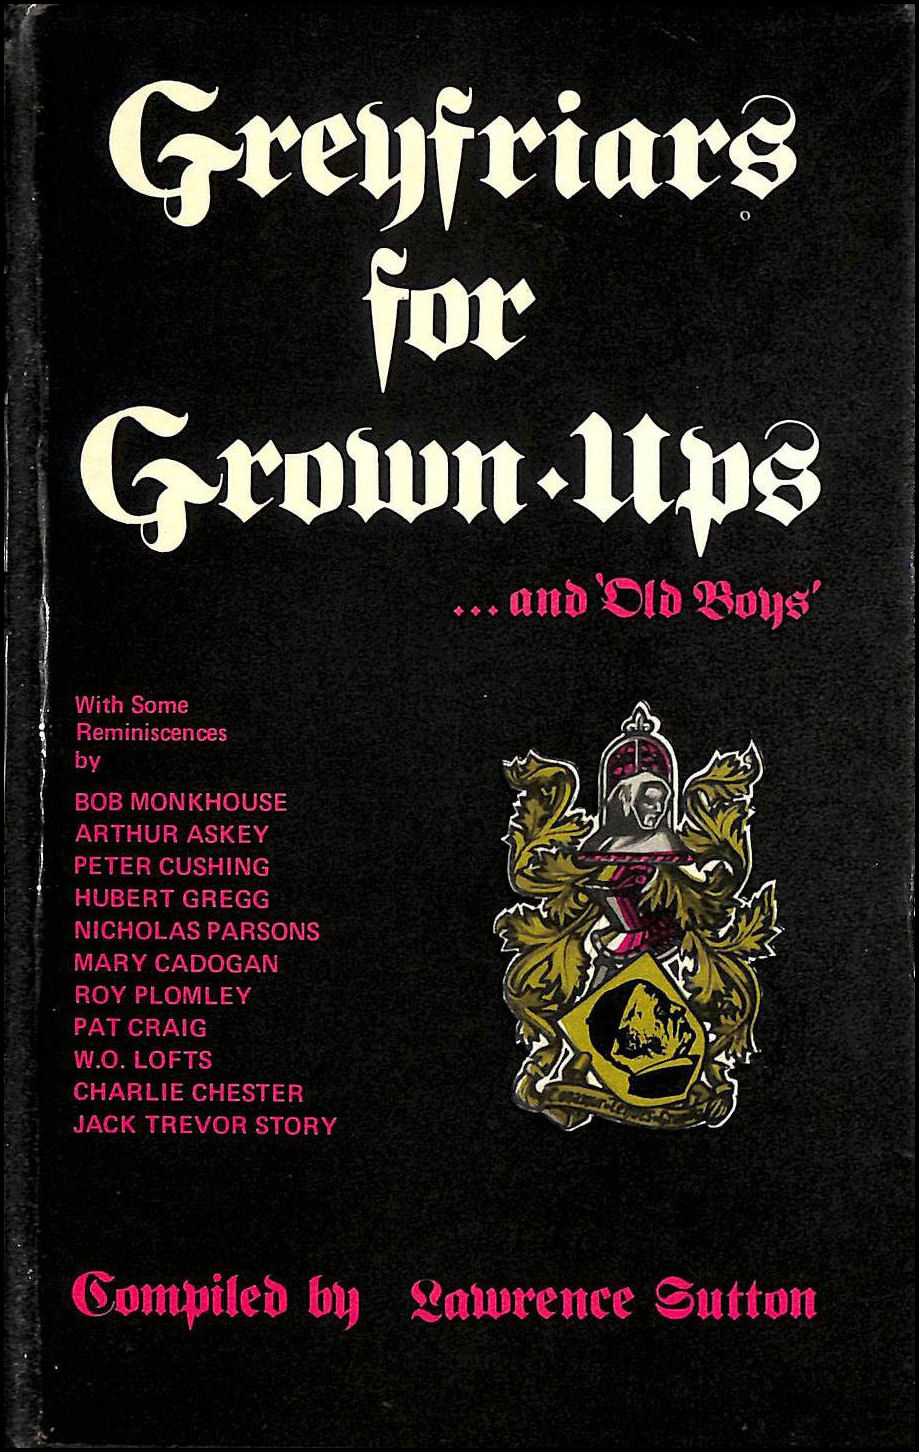 Image for Greyfriars for Grown-ups